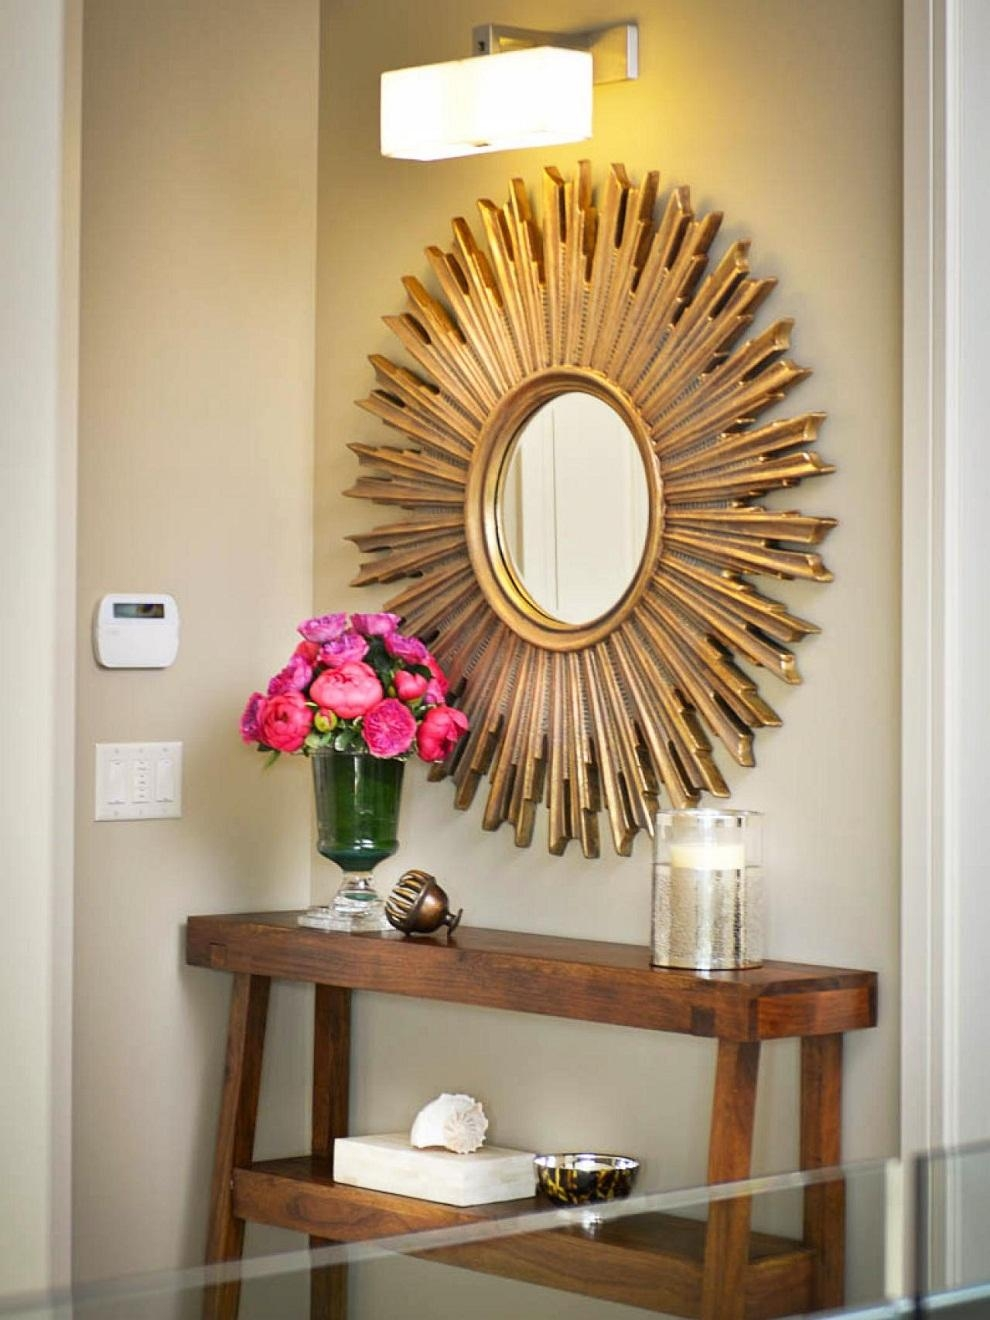 Interior & Decor: Starburst Mirror | Martha Stewart Sunburst Within Starburst Convex Mirror (Image 10 of 20)